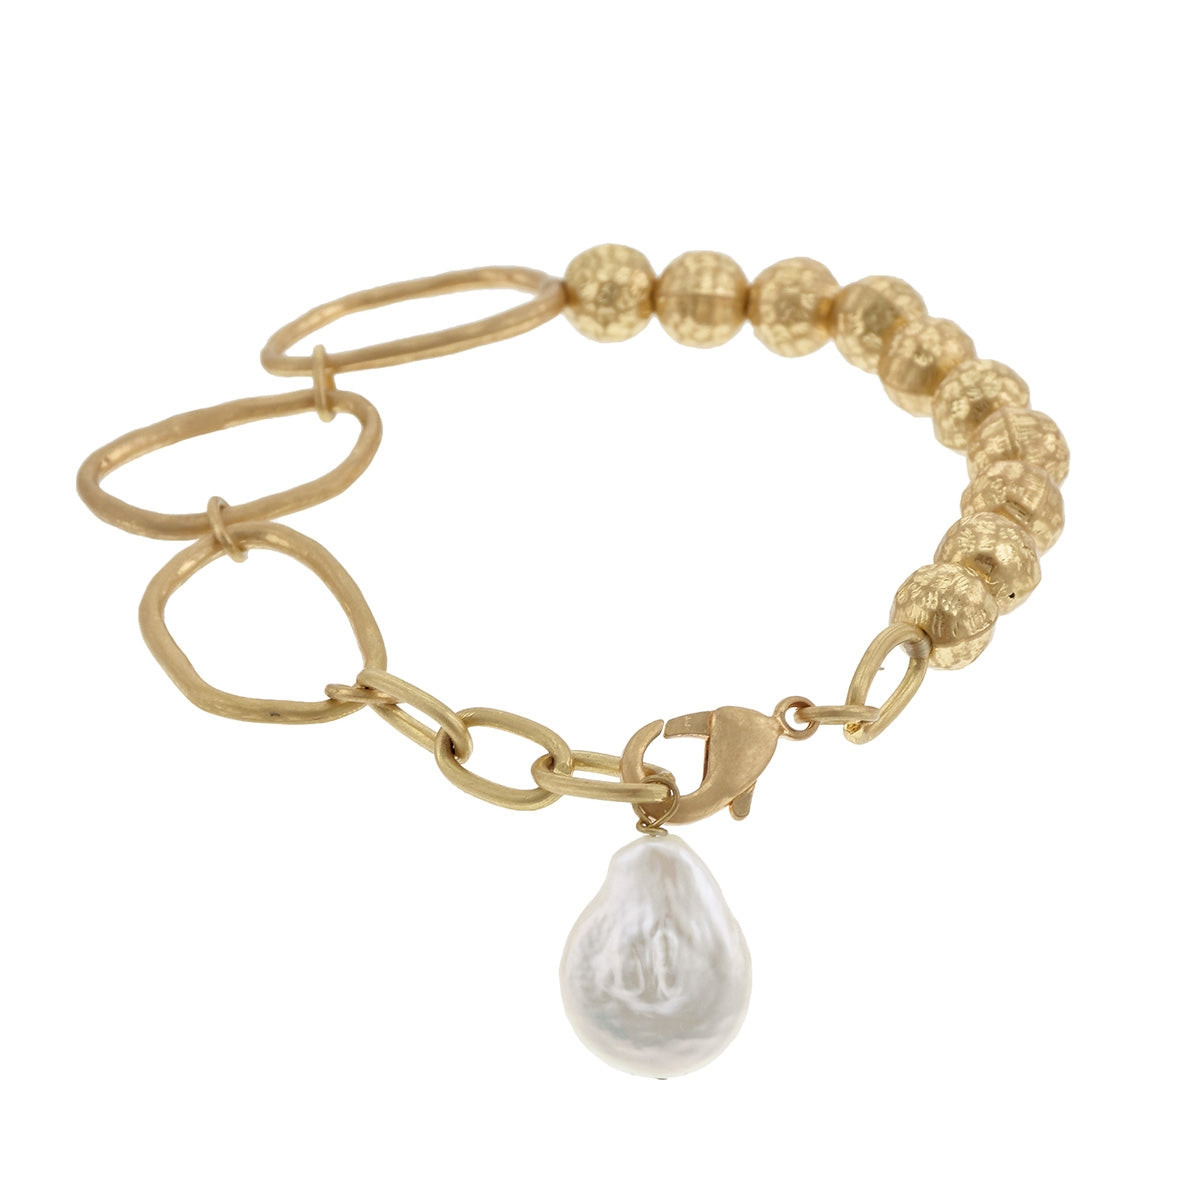 Hammered Worn Gold Stretch Bracelet With Baroque Pearl